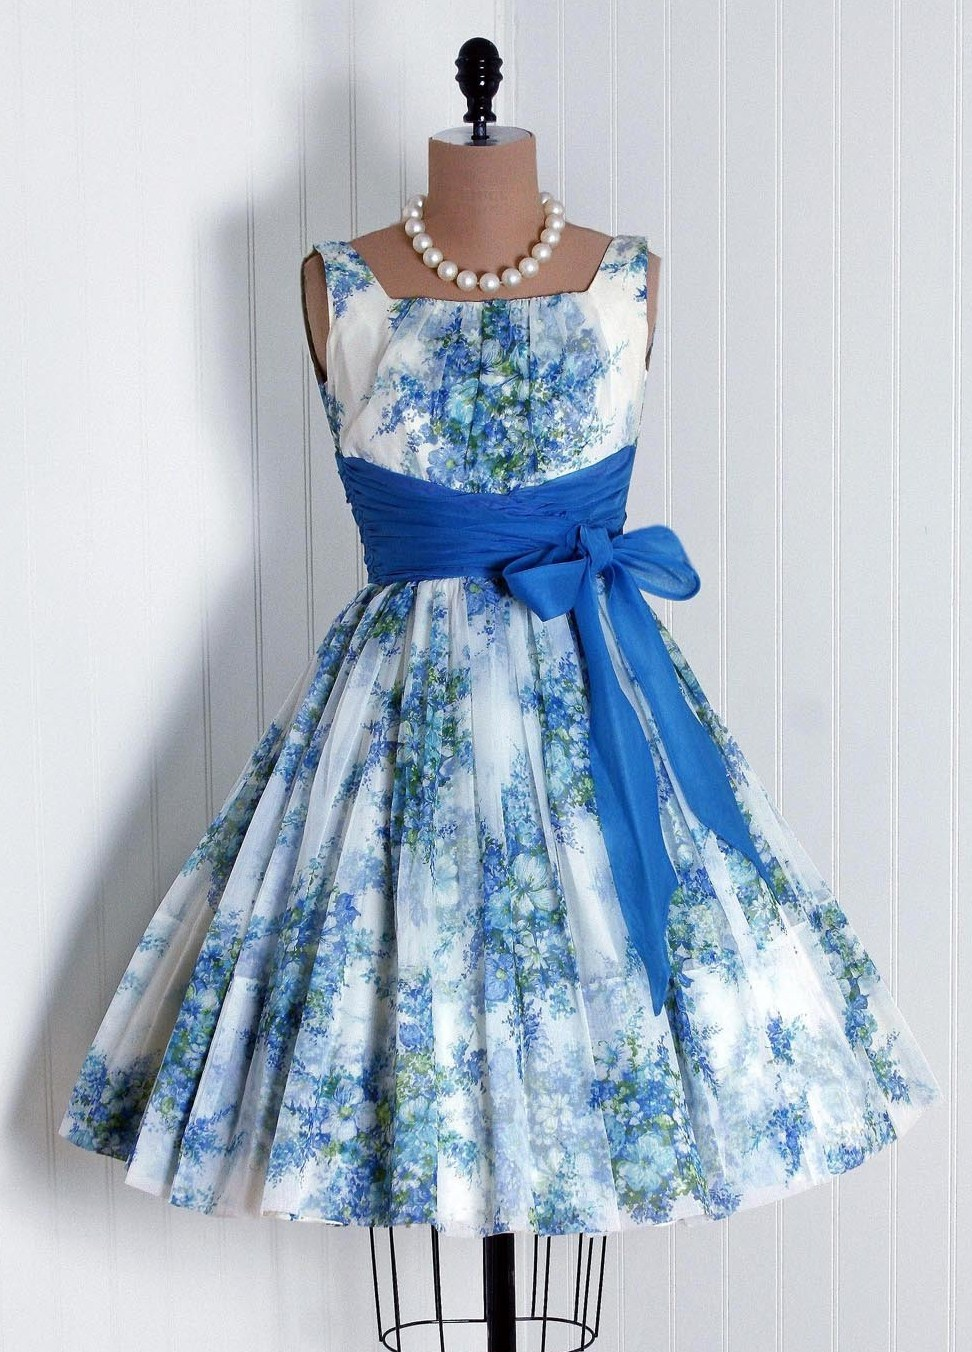 Inspired by kelly style inspiration vintage blue floral party dress